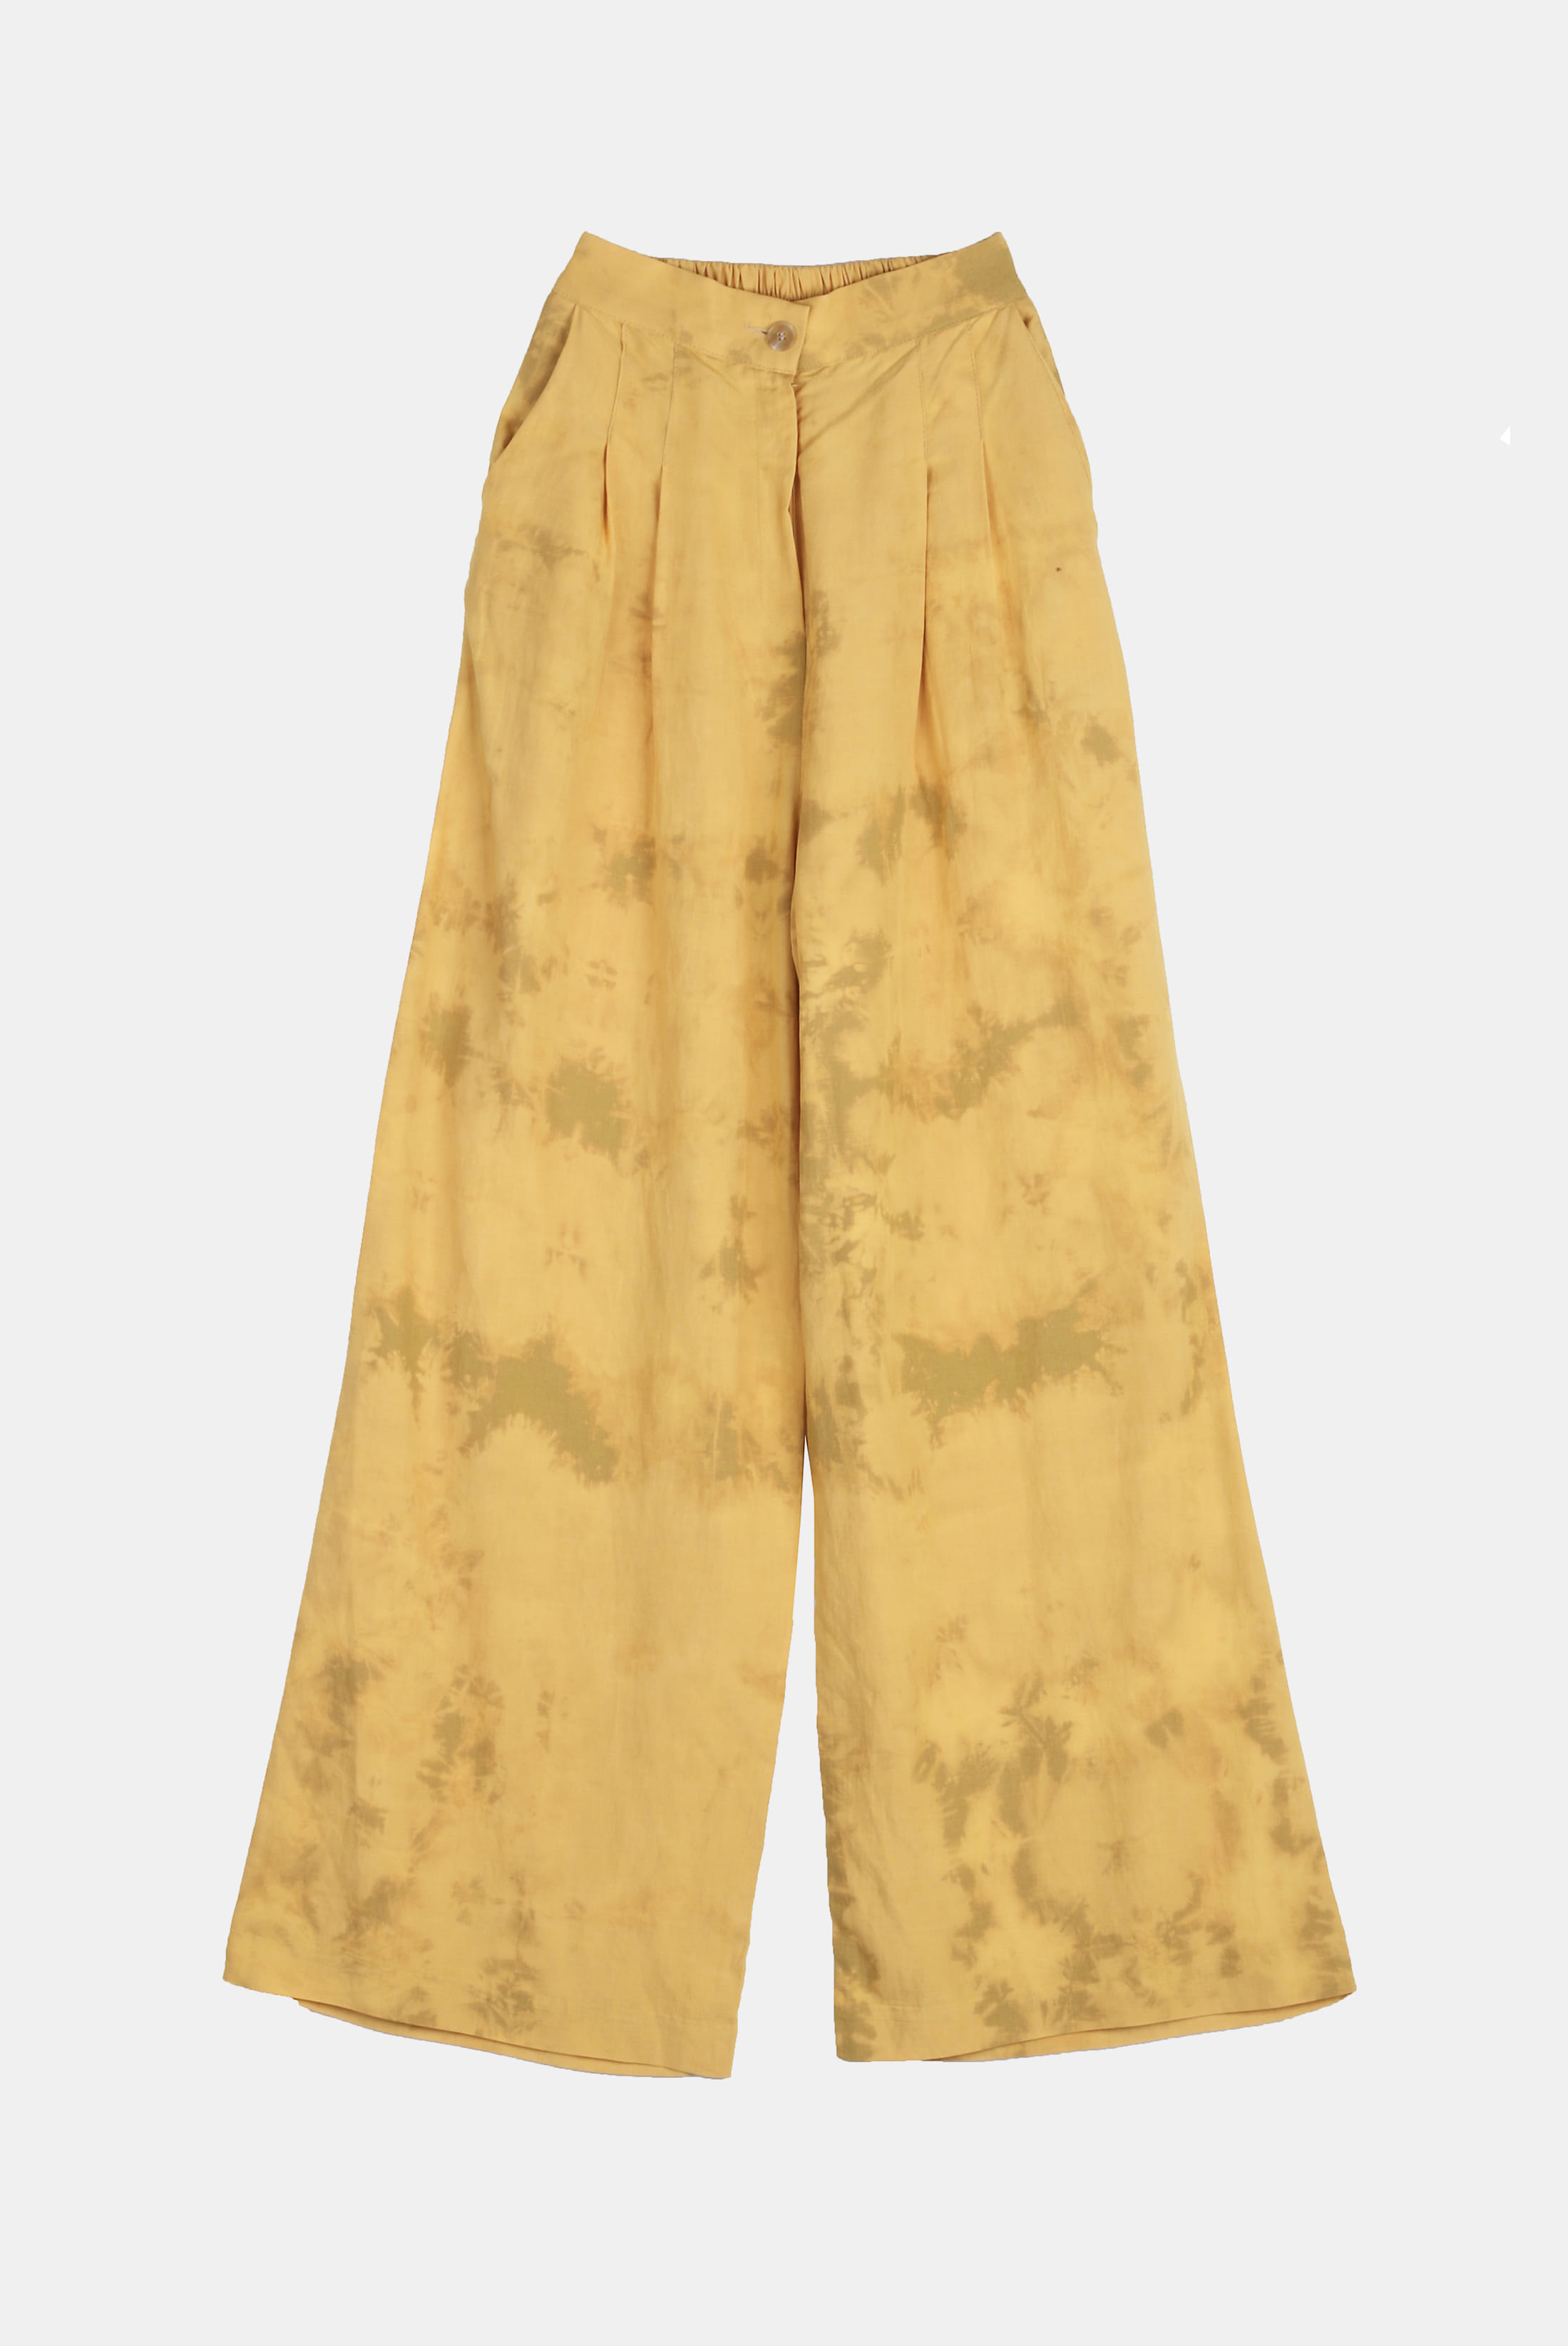 (W) Linen_Washing Tye-Dye Pants